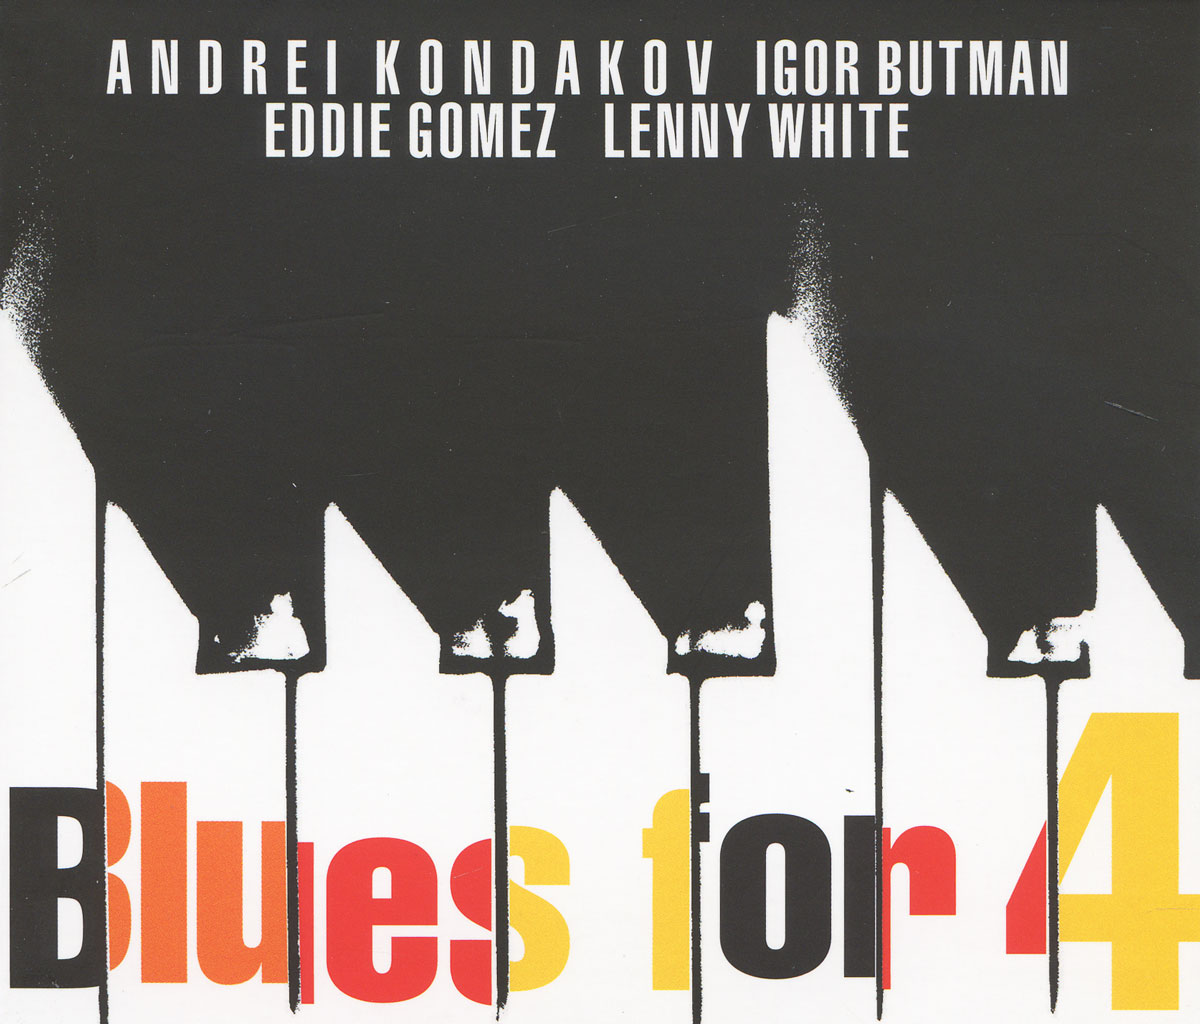 Игорь Бутман,Андрей Кондаков,Эдди Гомез,Ленни Уайт Andrei Kondakov, Igor Butman, Eddie Gomez, Lenny White. Blues For 4 кондаков н иконы